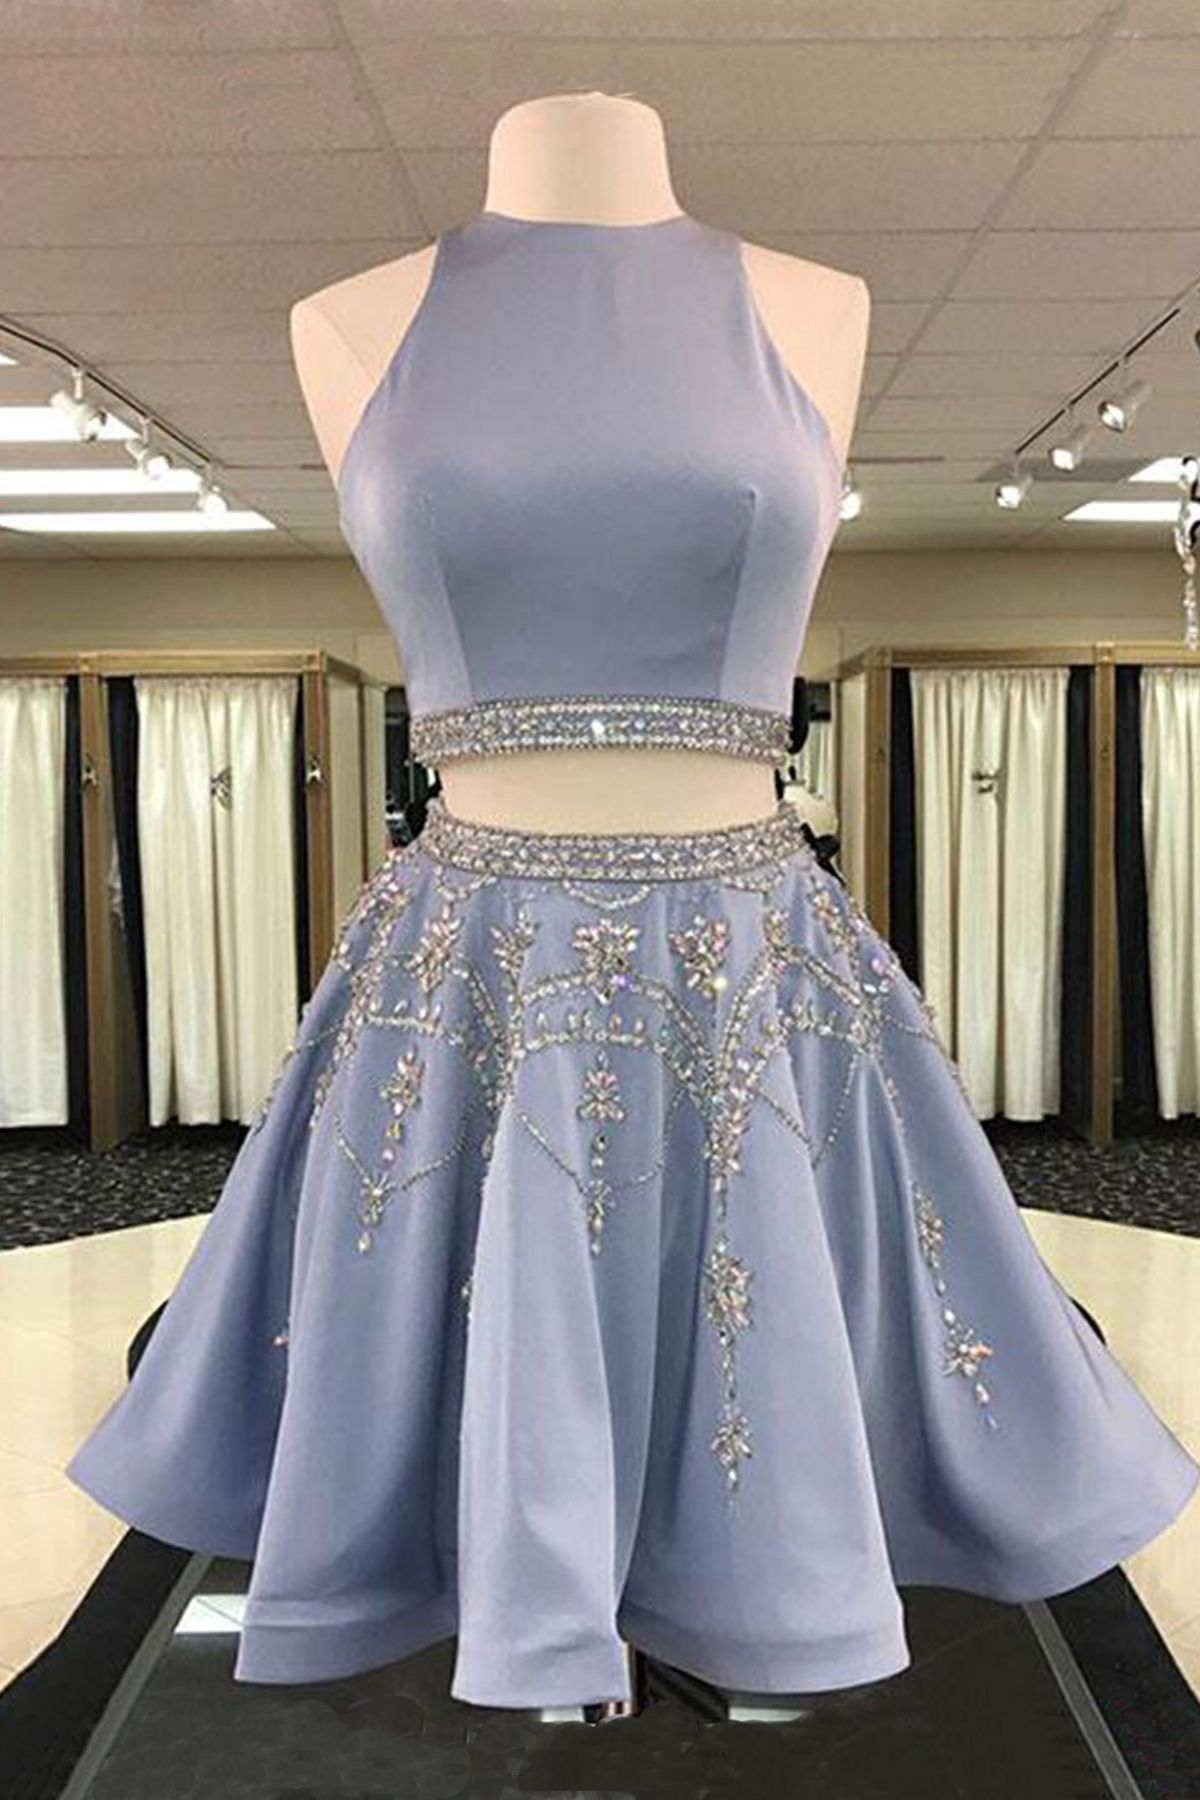 Cute Blue Gray Satin Two Pieces Prom Dress With Sequins And Beading Homecoming Party Dress Two Piece Homecoming Dress Piece Prom Dress Cute Homecoming Dresses [ 1800 x 1200 Pixel ]